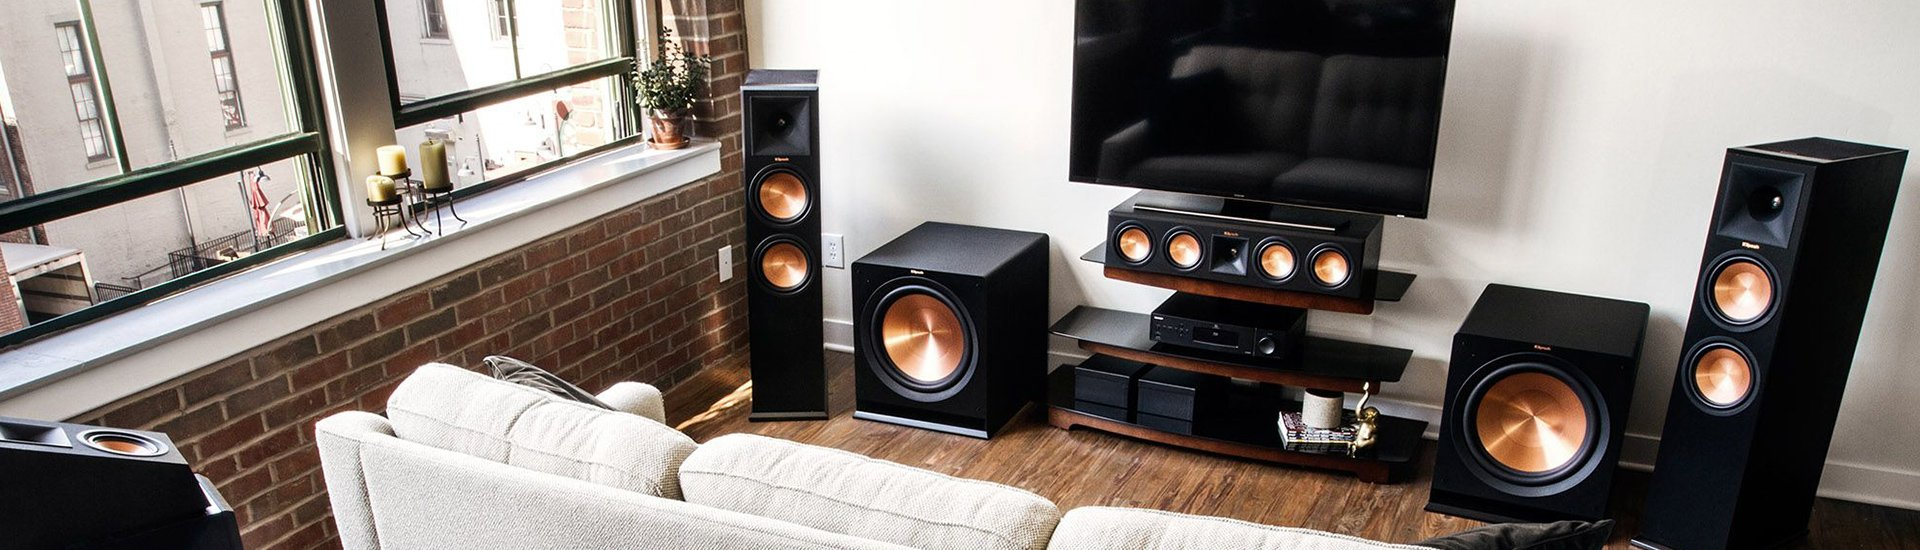 How to Choose the Best Home Theater System